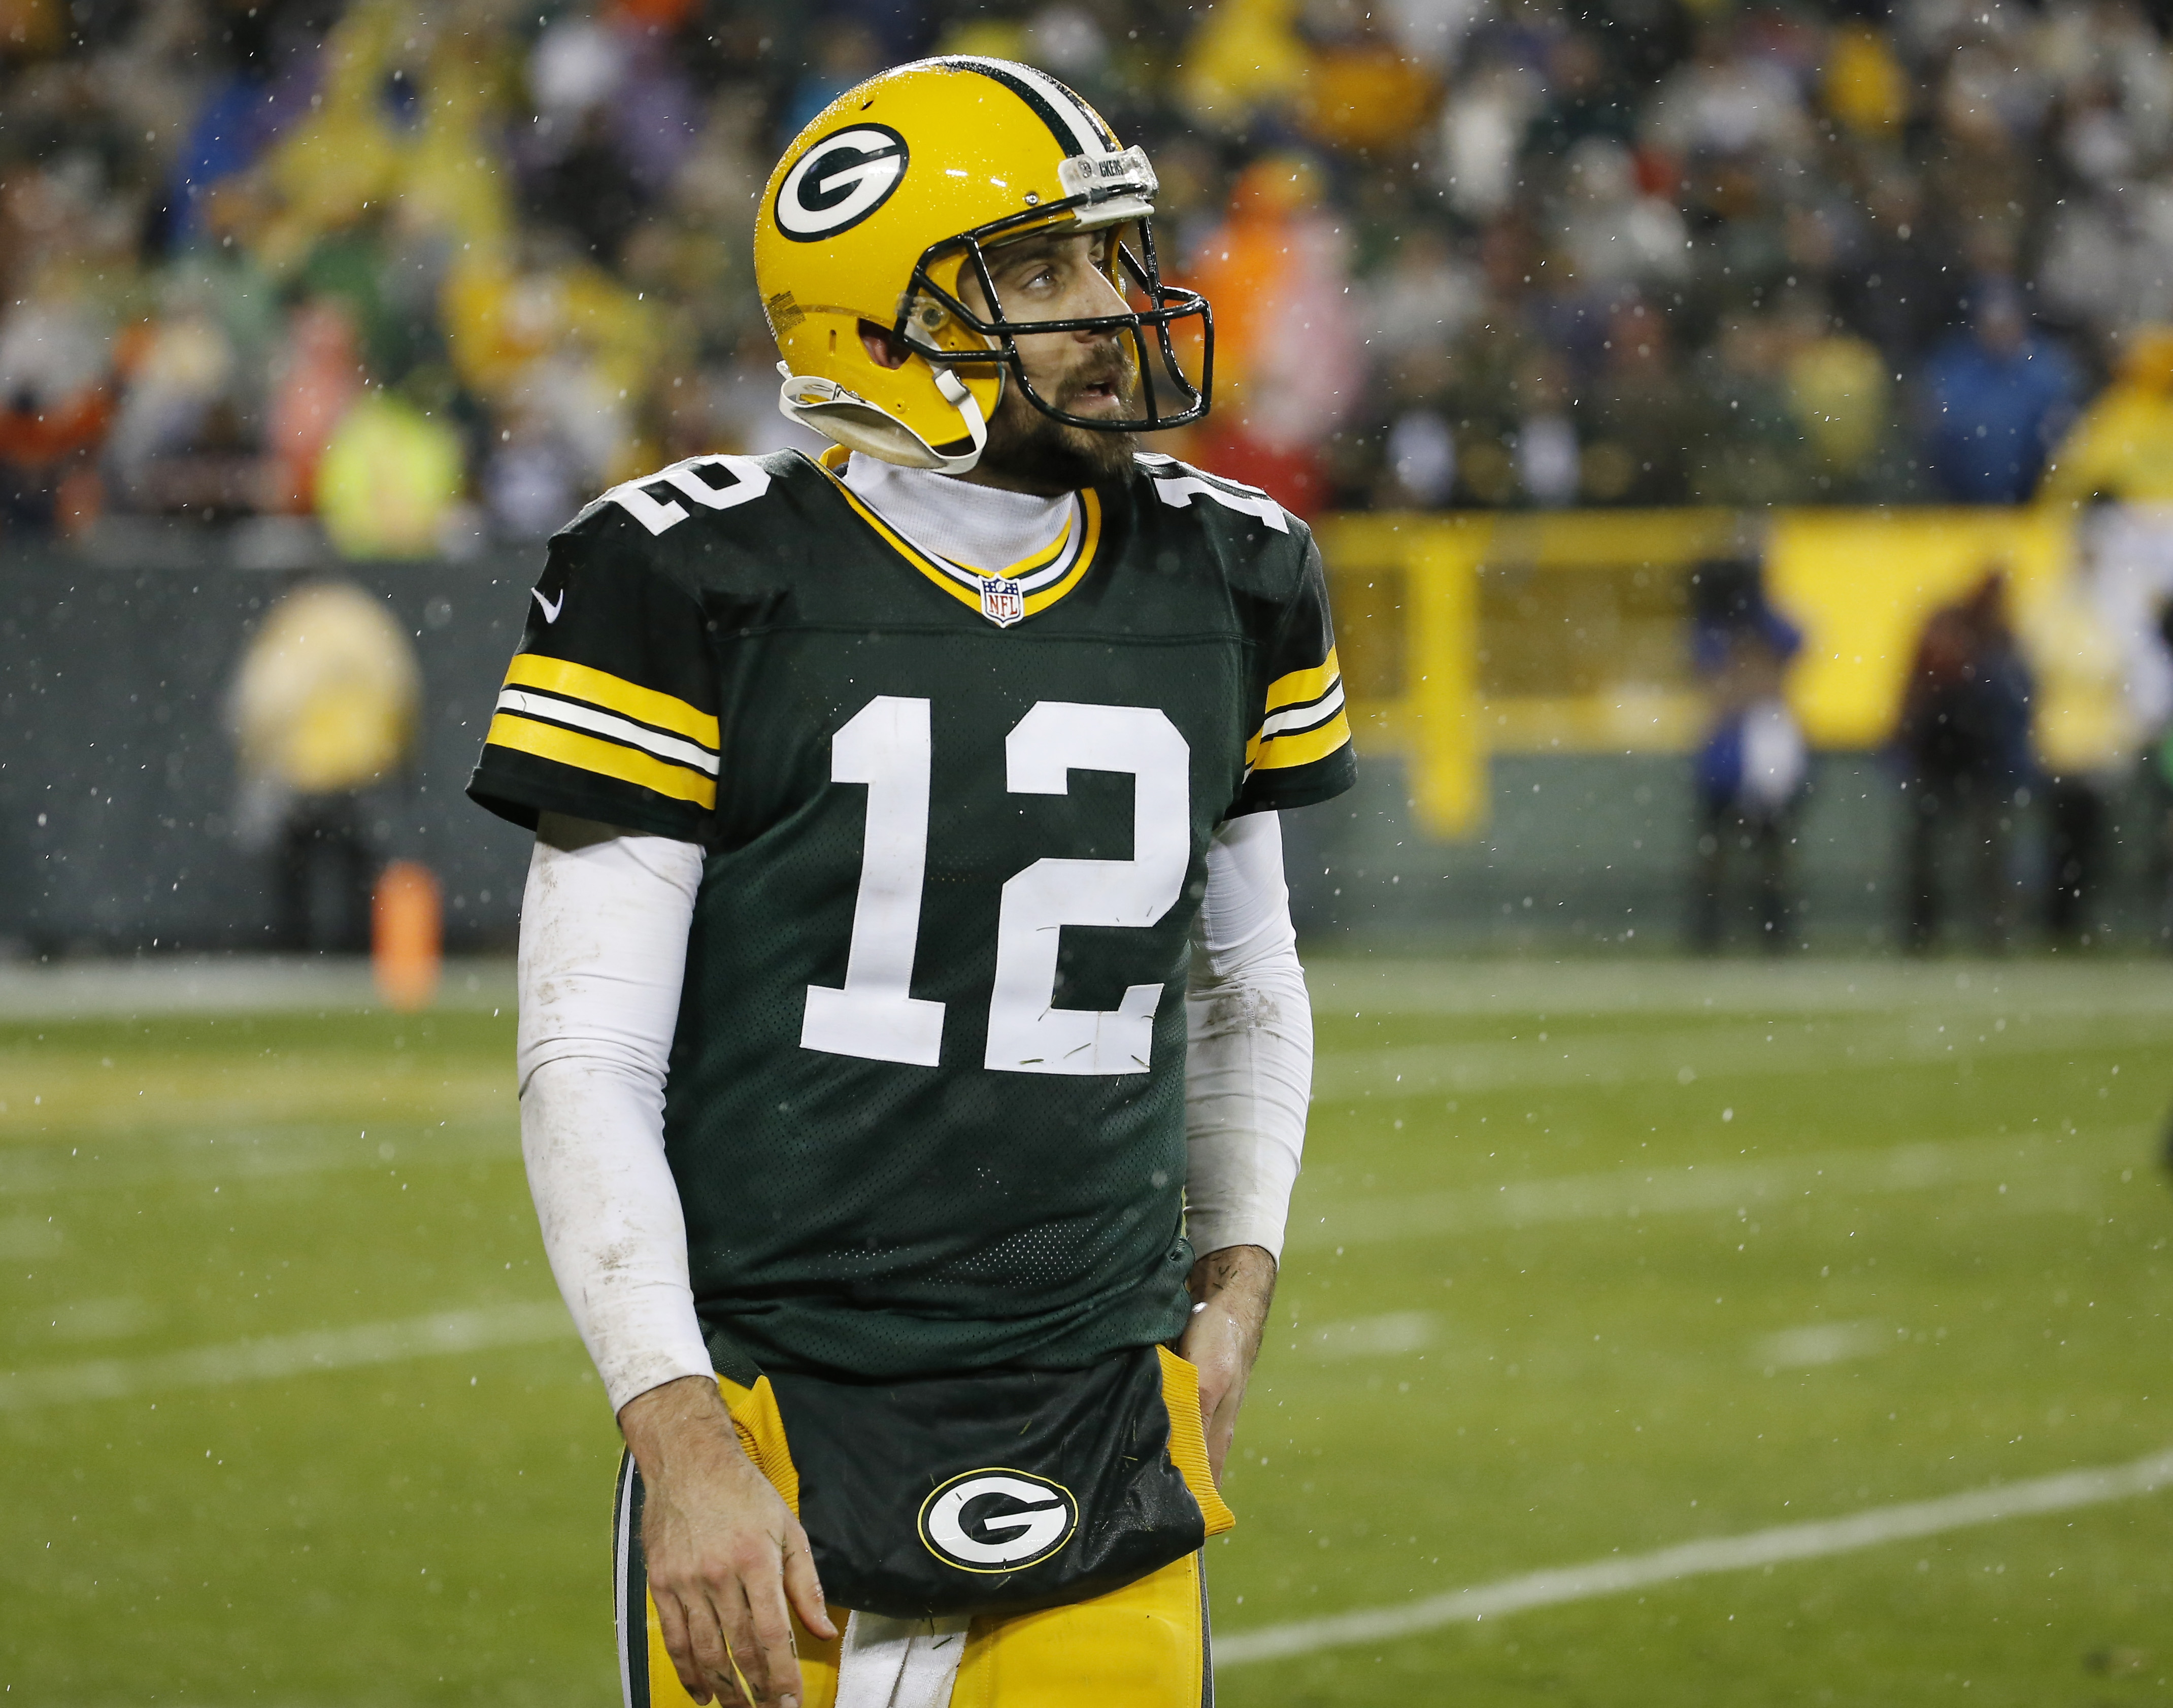 Green Bay Packers' Aaron Rodgers walks off the field after failing to complete on fourth down in the final seconds of an NFL football game against the Chicago Bears Thursday, Nov. 26, 2015, in Green Bay, Wis. The Bears won 17-13. (AP Photo/Morry Gash)